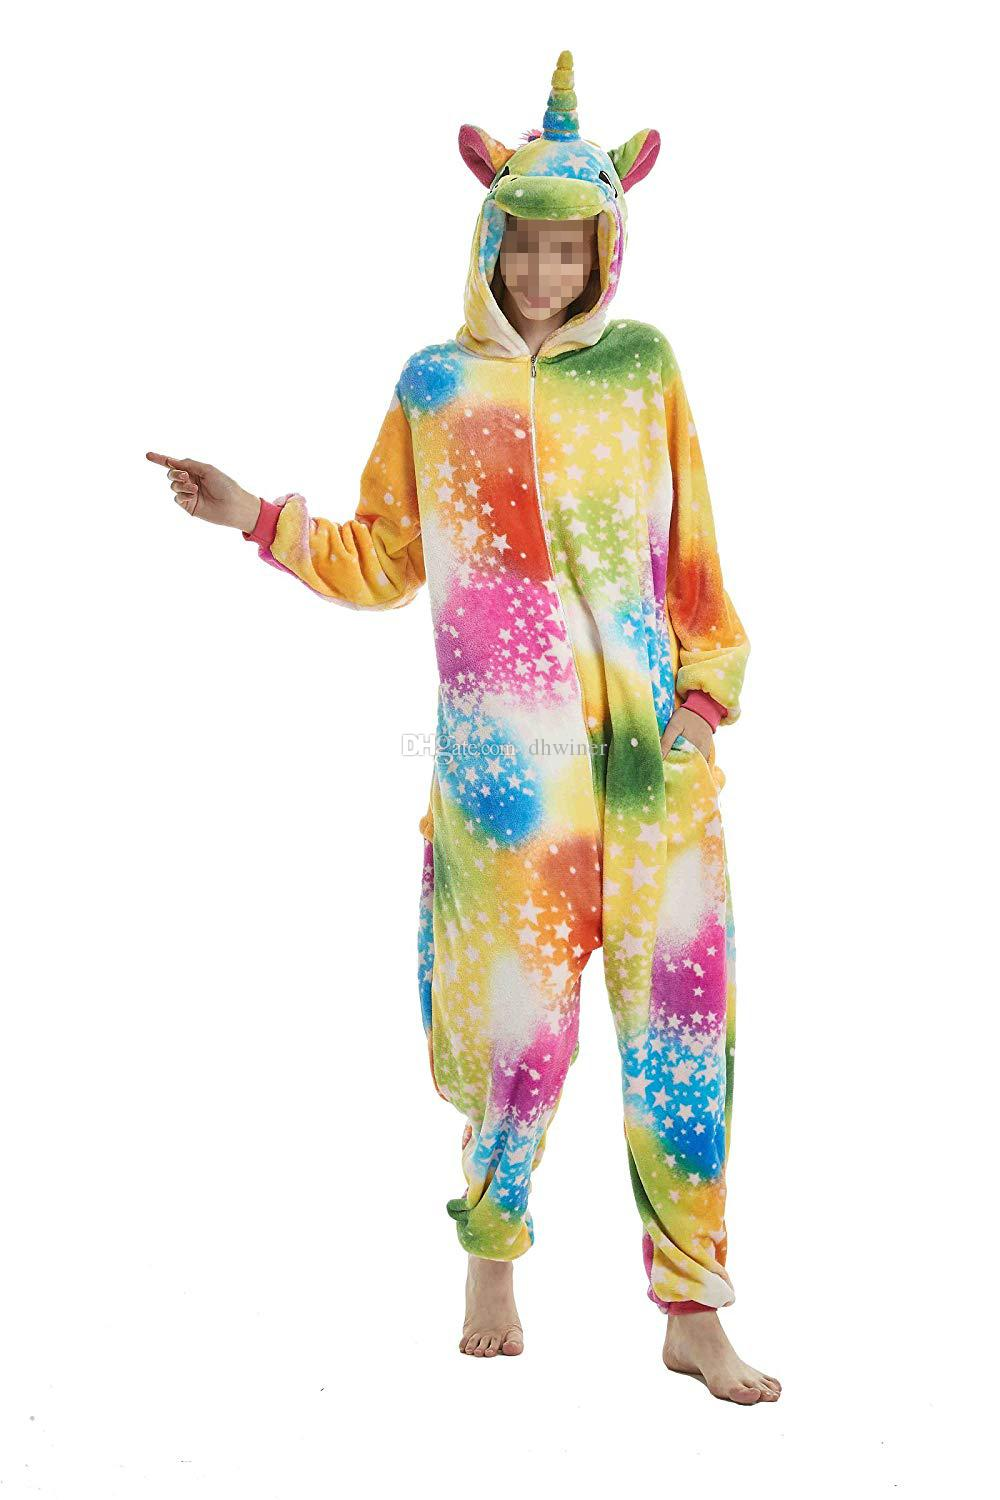 Halloween Unisex Adult Unicorn Pajamas Kigurumi Onepiece Cosplay Costume  Animal Outfit Themes For Costume Parties Group Costumes For Women From  Dhwiner 78204bc4e